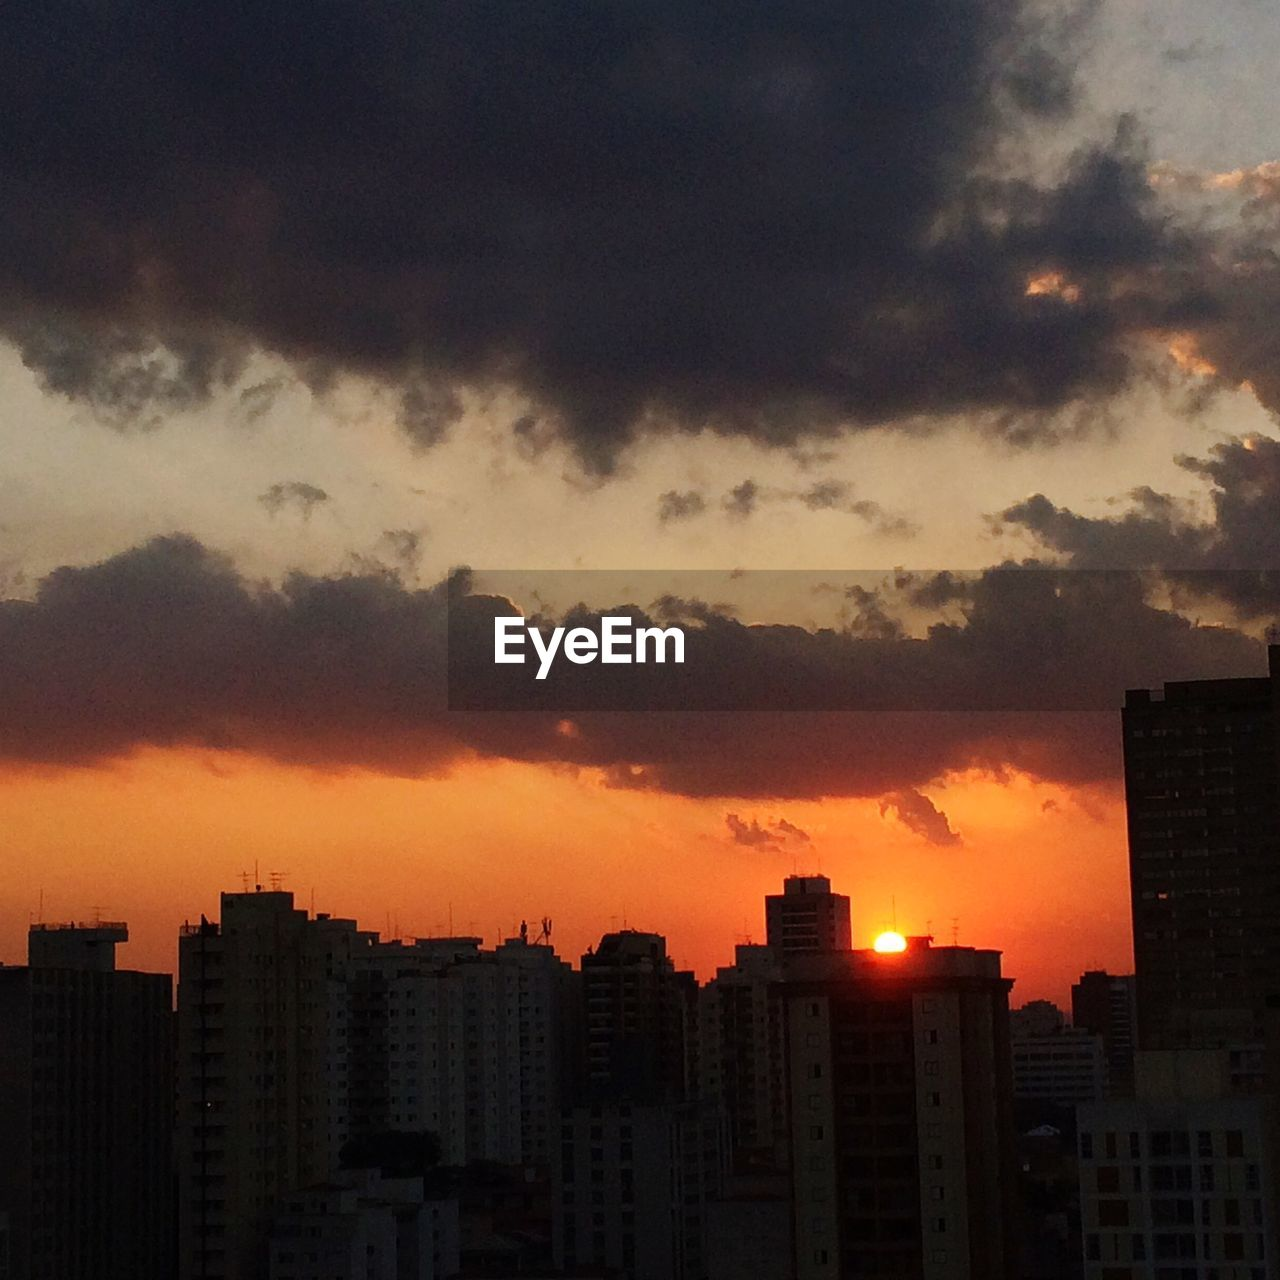 sunset, cityscape, architecture, city, skyscraper, building exterior, no people, modern, sky, residential, outdoors